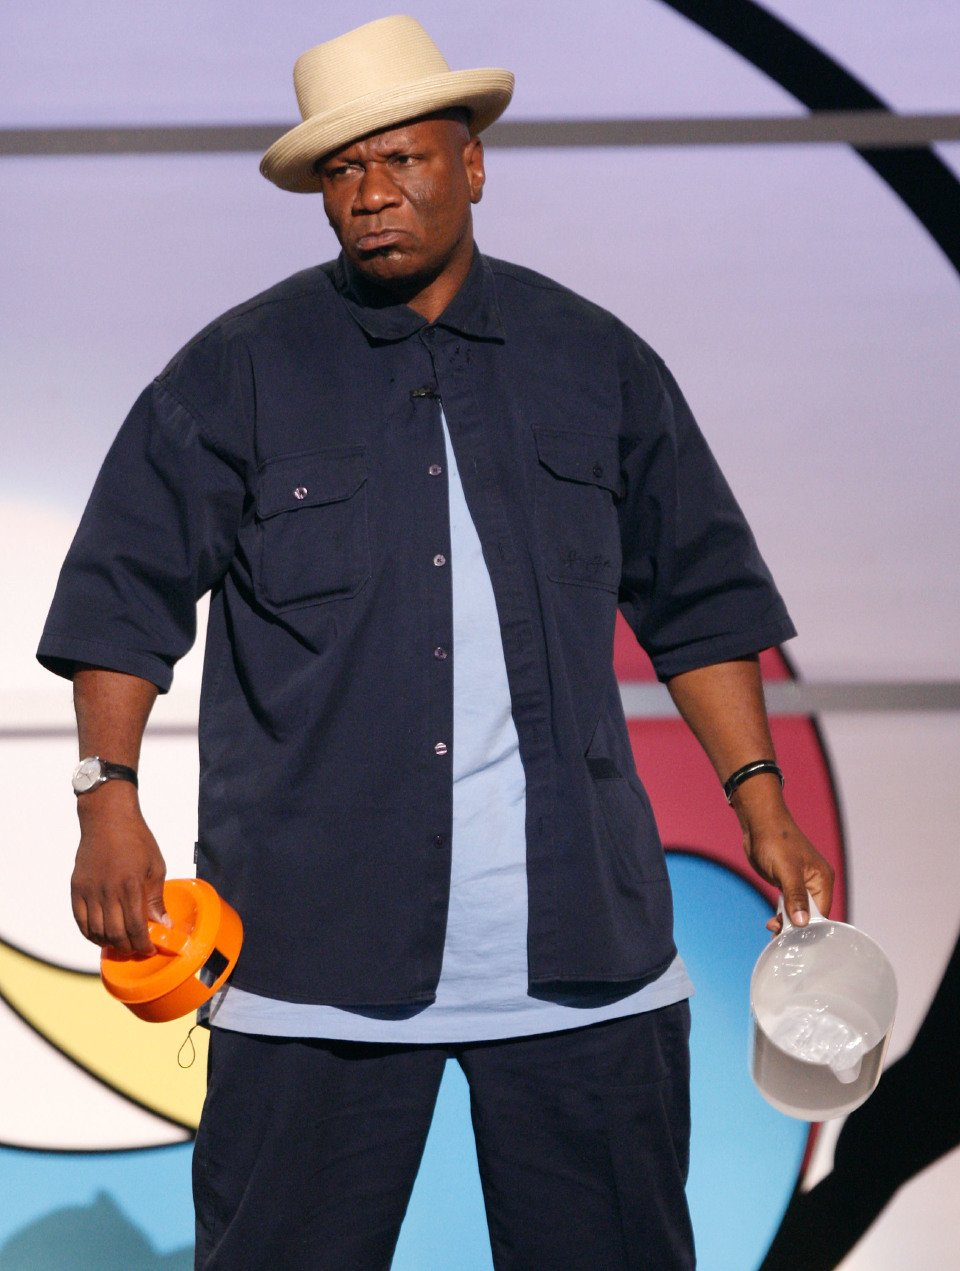 Ving Rhames performs a skit onstage during the 2009 BET Awards.   Source: Getty Images